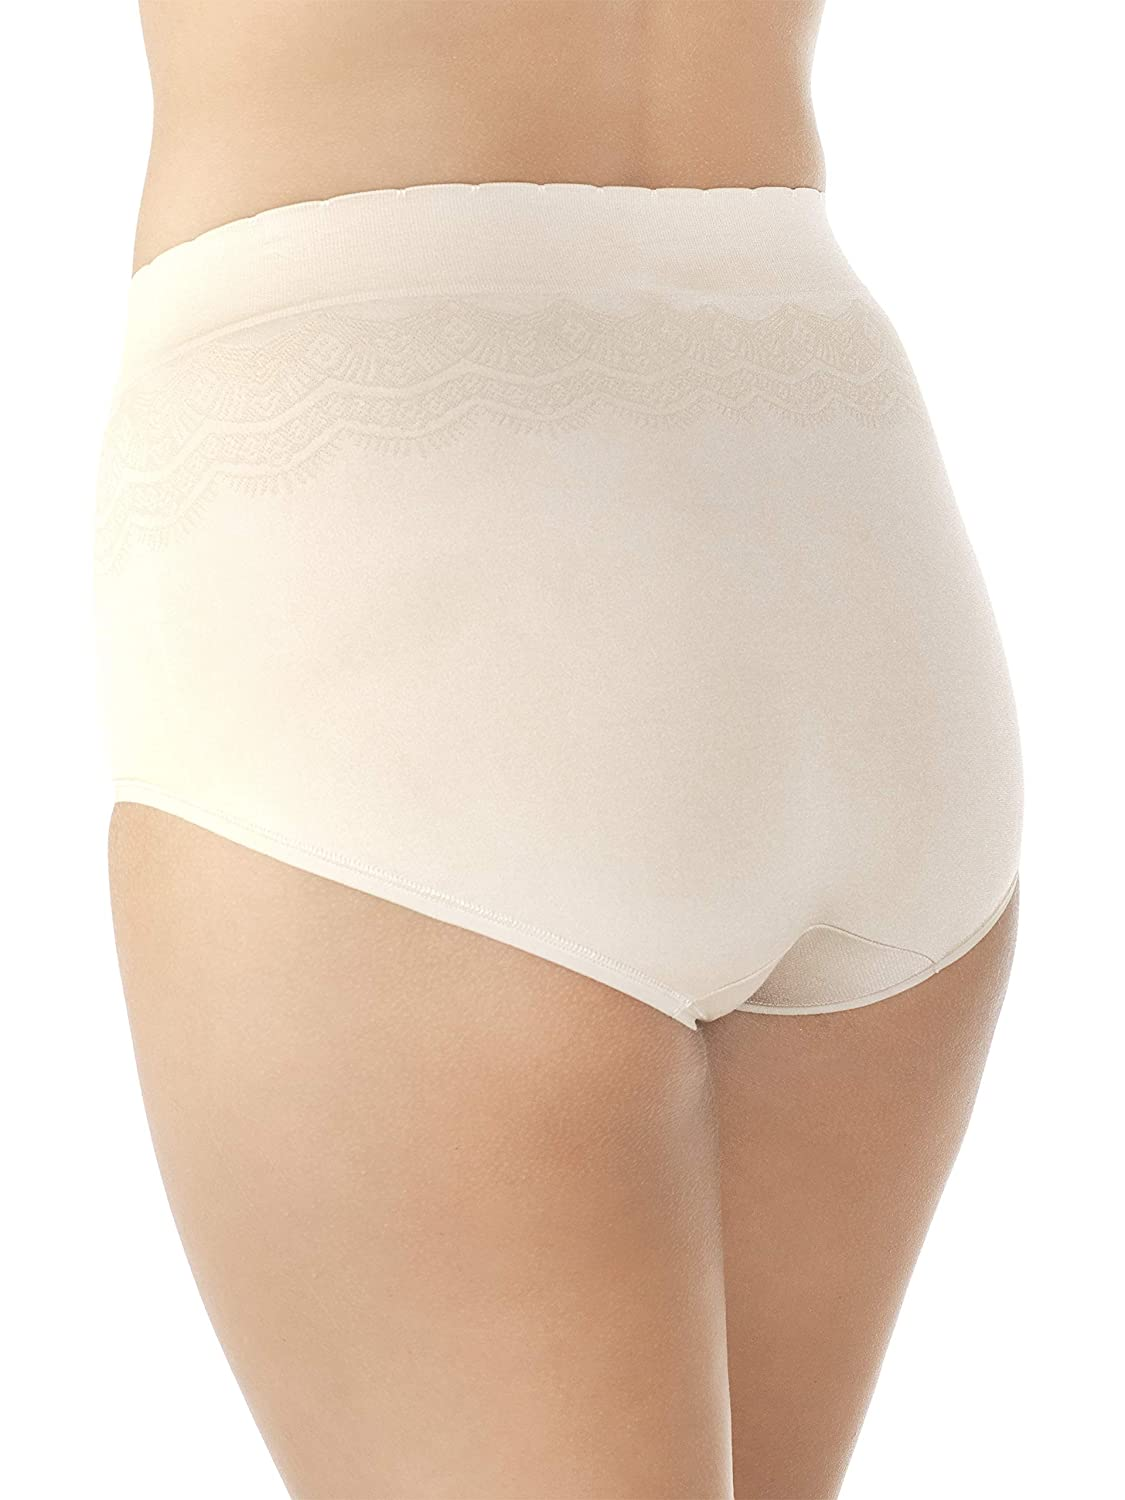 efc253f70fef Vanity Fair Women's No Pinch-No Show Seamless Brief Panty 13170 at Amazon  Women's Clothing store: